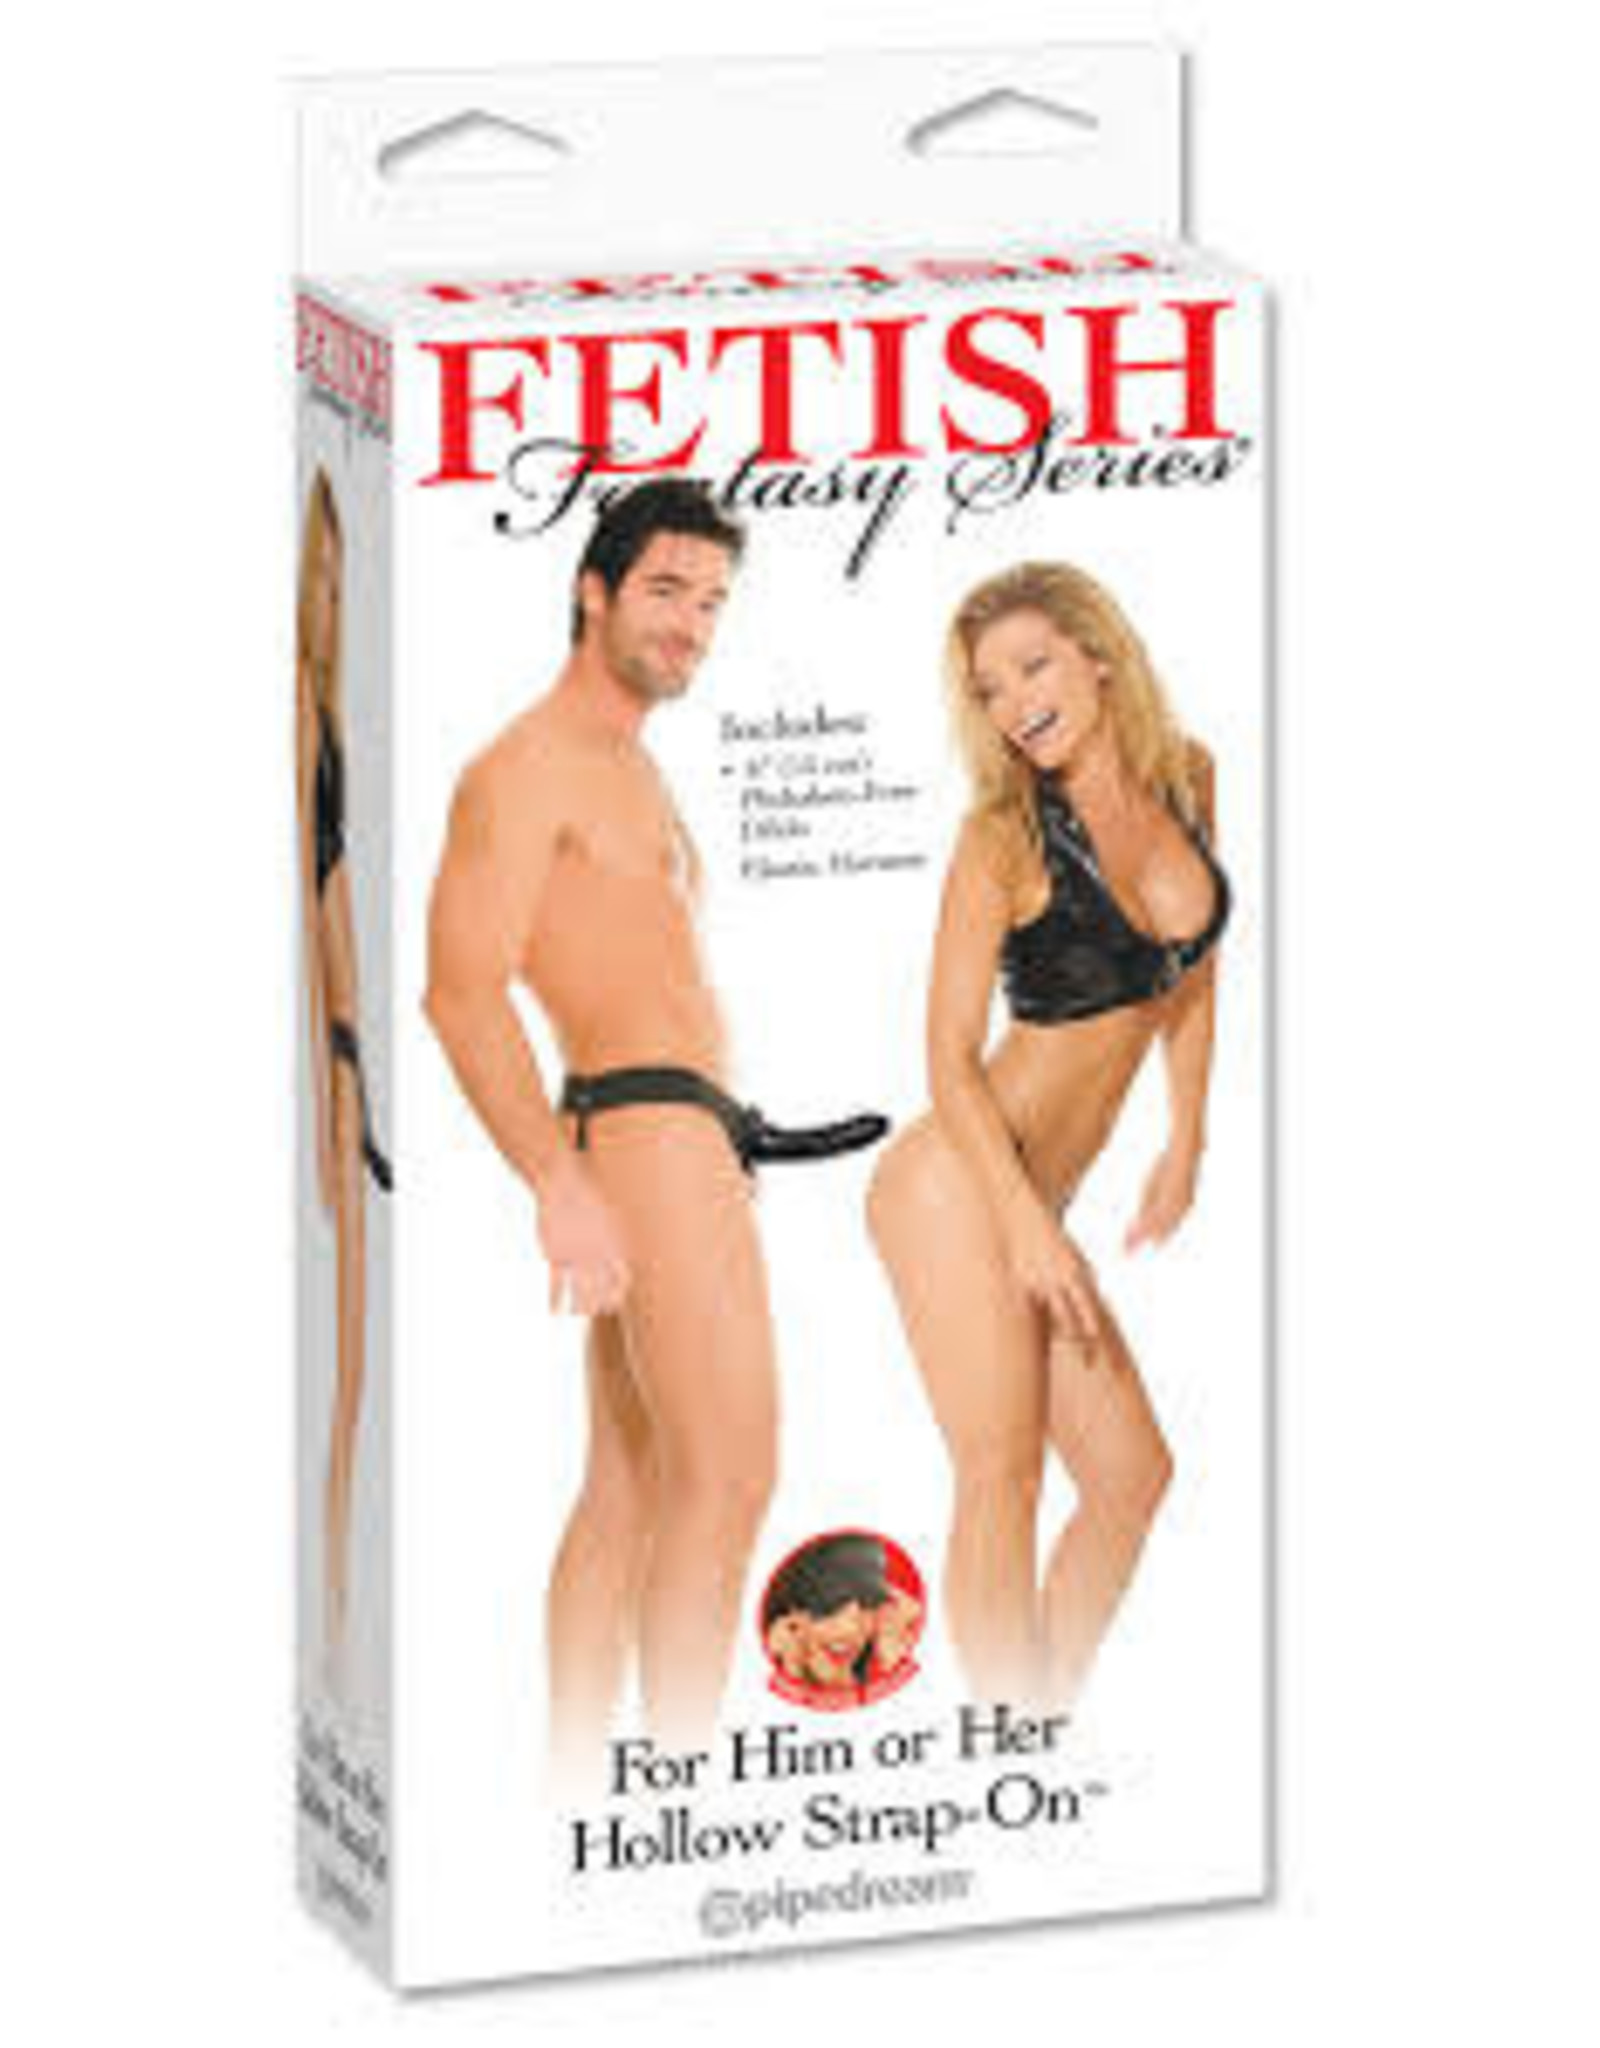 FETISH FANTASY - HOLLOW STRAP-ON HIM OR HER - BLACK